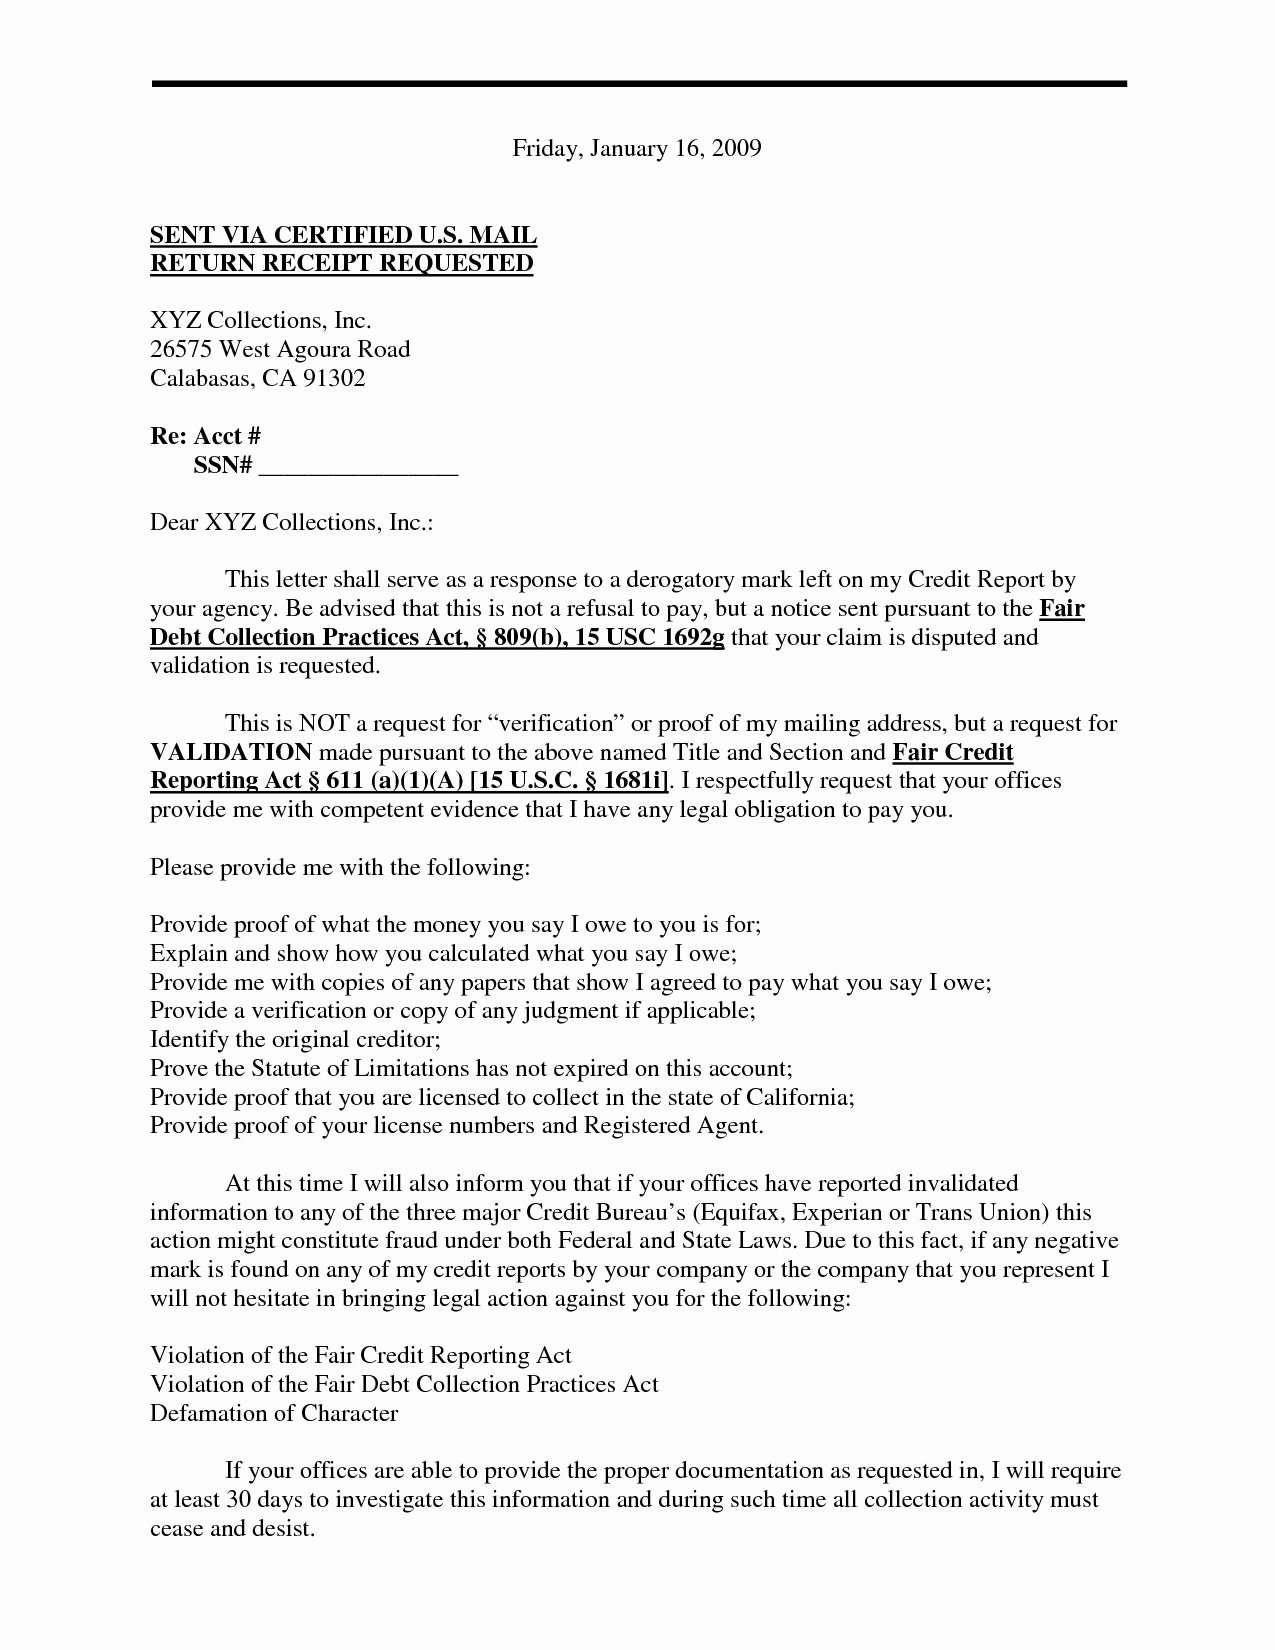 Validation Debt Letter